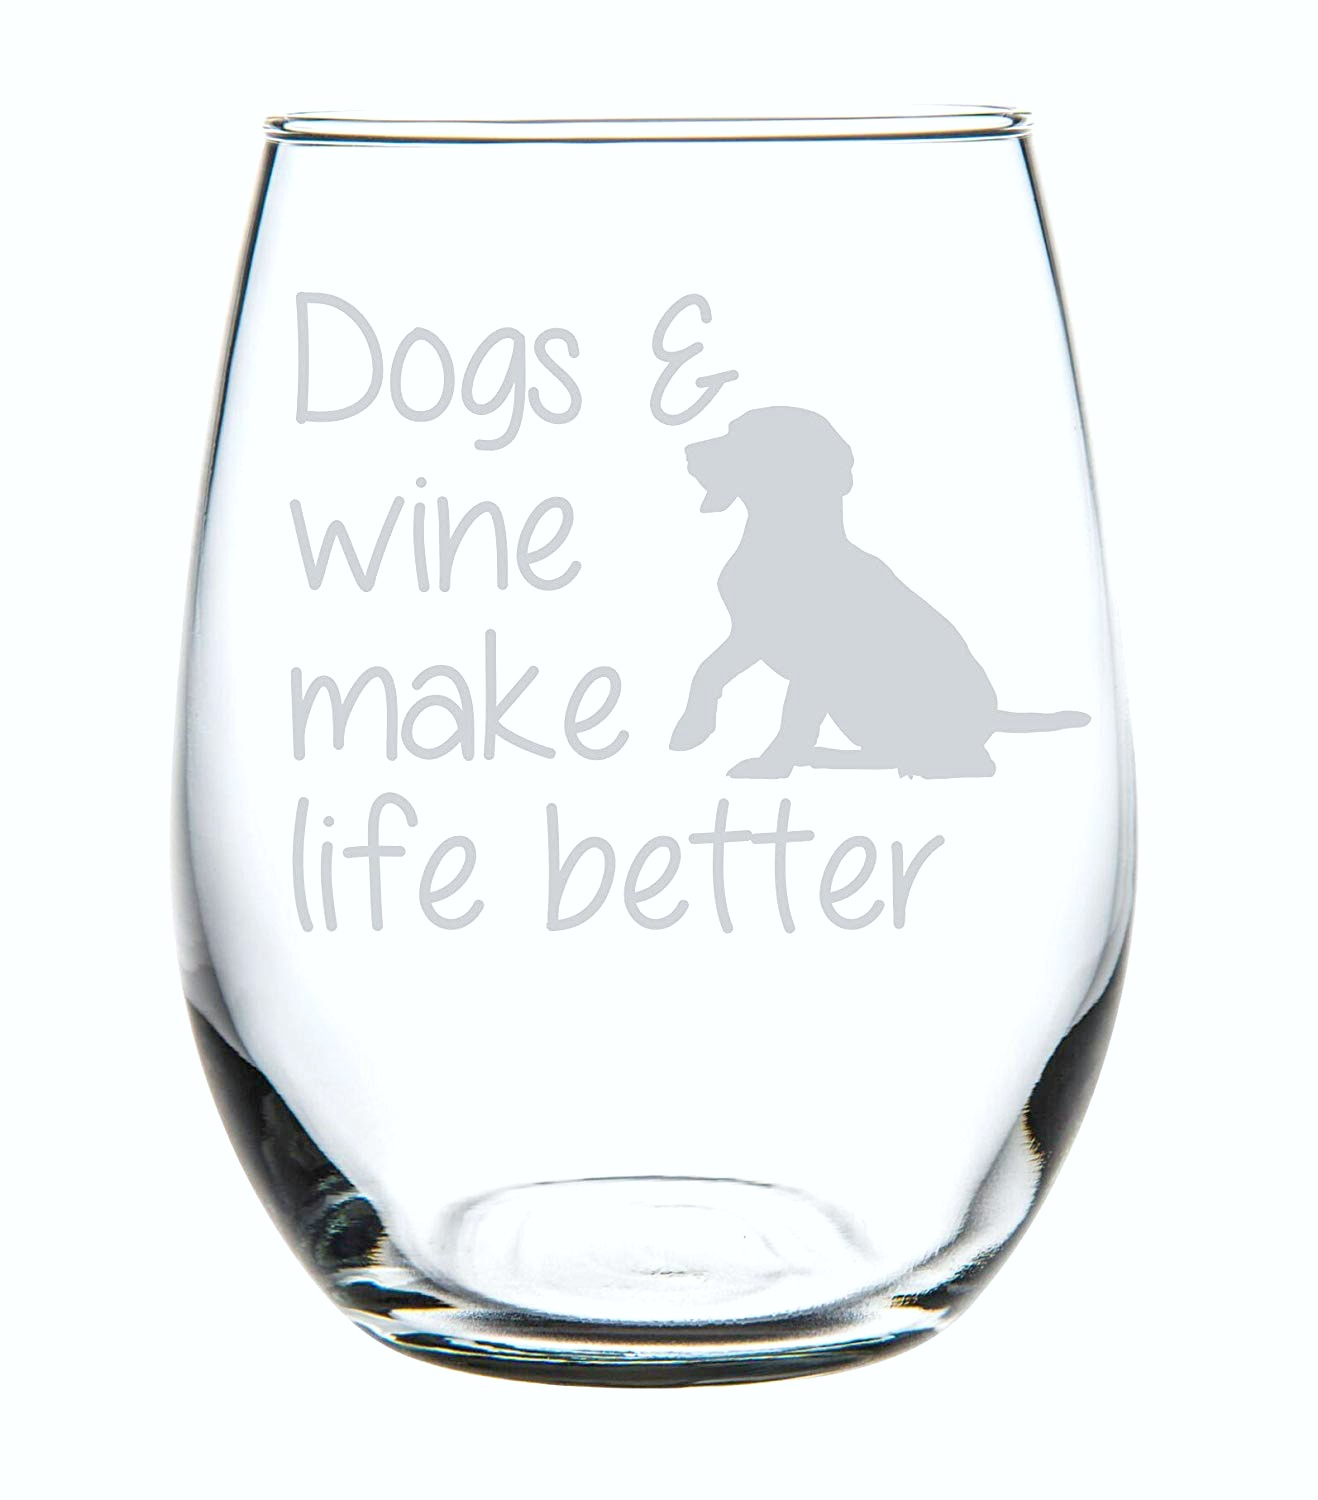 Dogs and Wine Make Life Better is written on a clear wine glass tumbler.